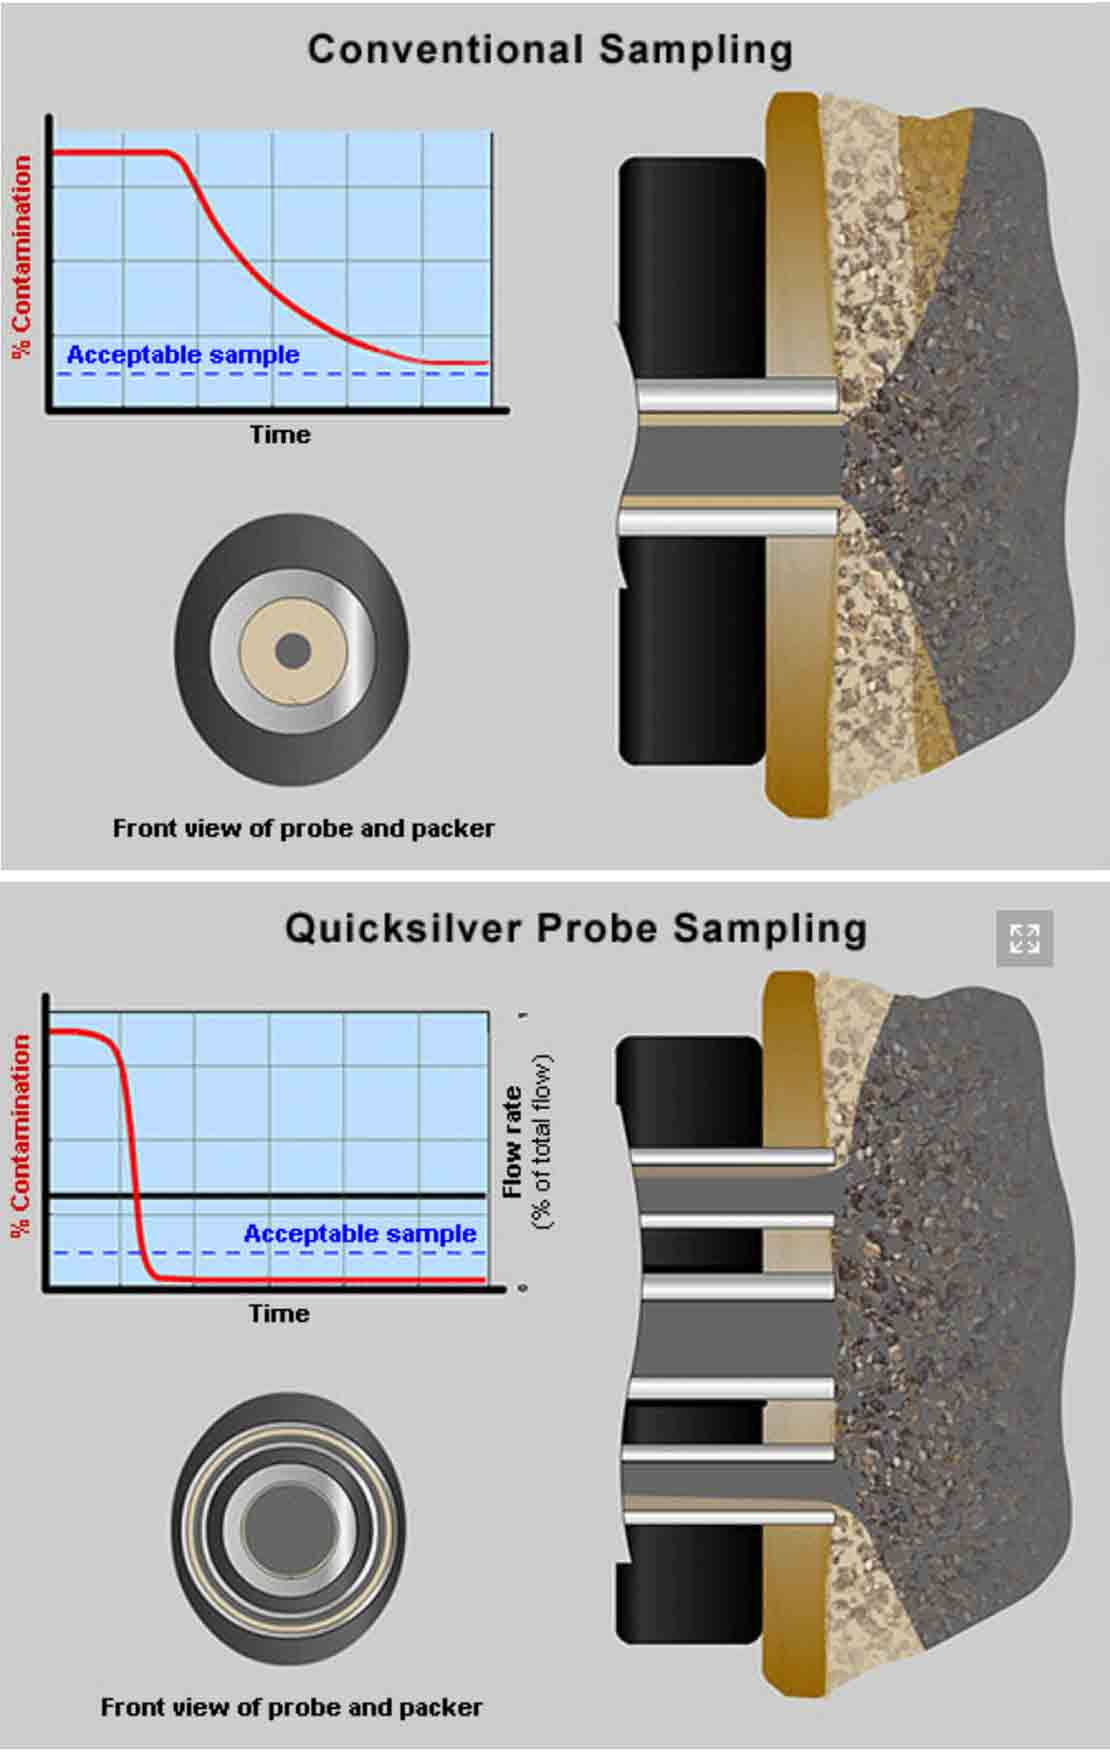 Quicksilver Probe extraction compared to conventional sampling probe.